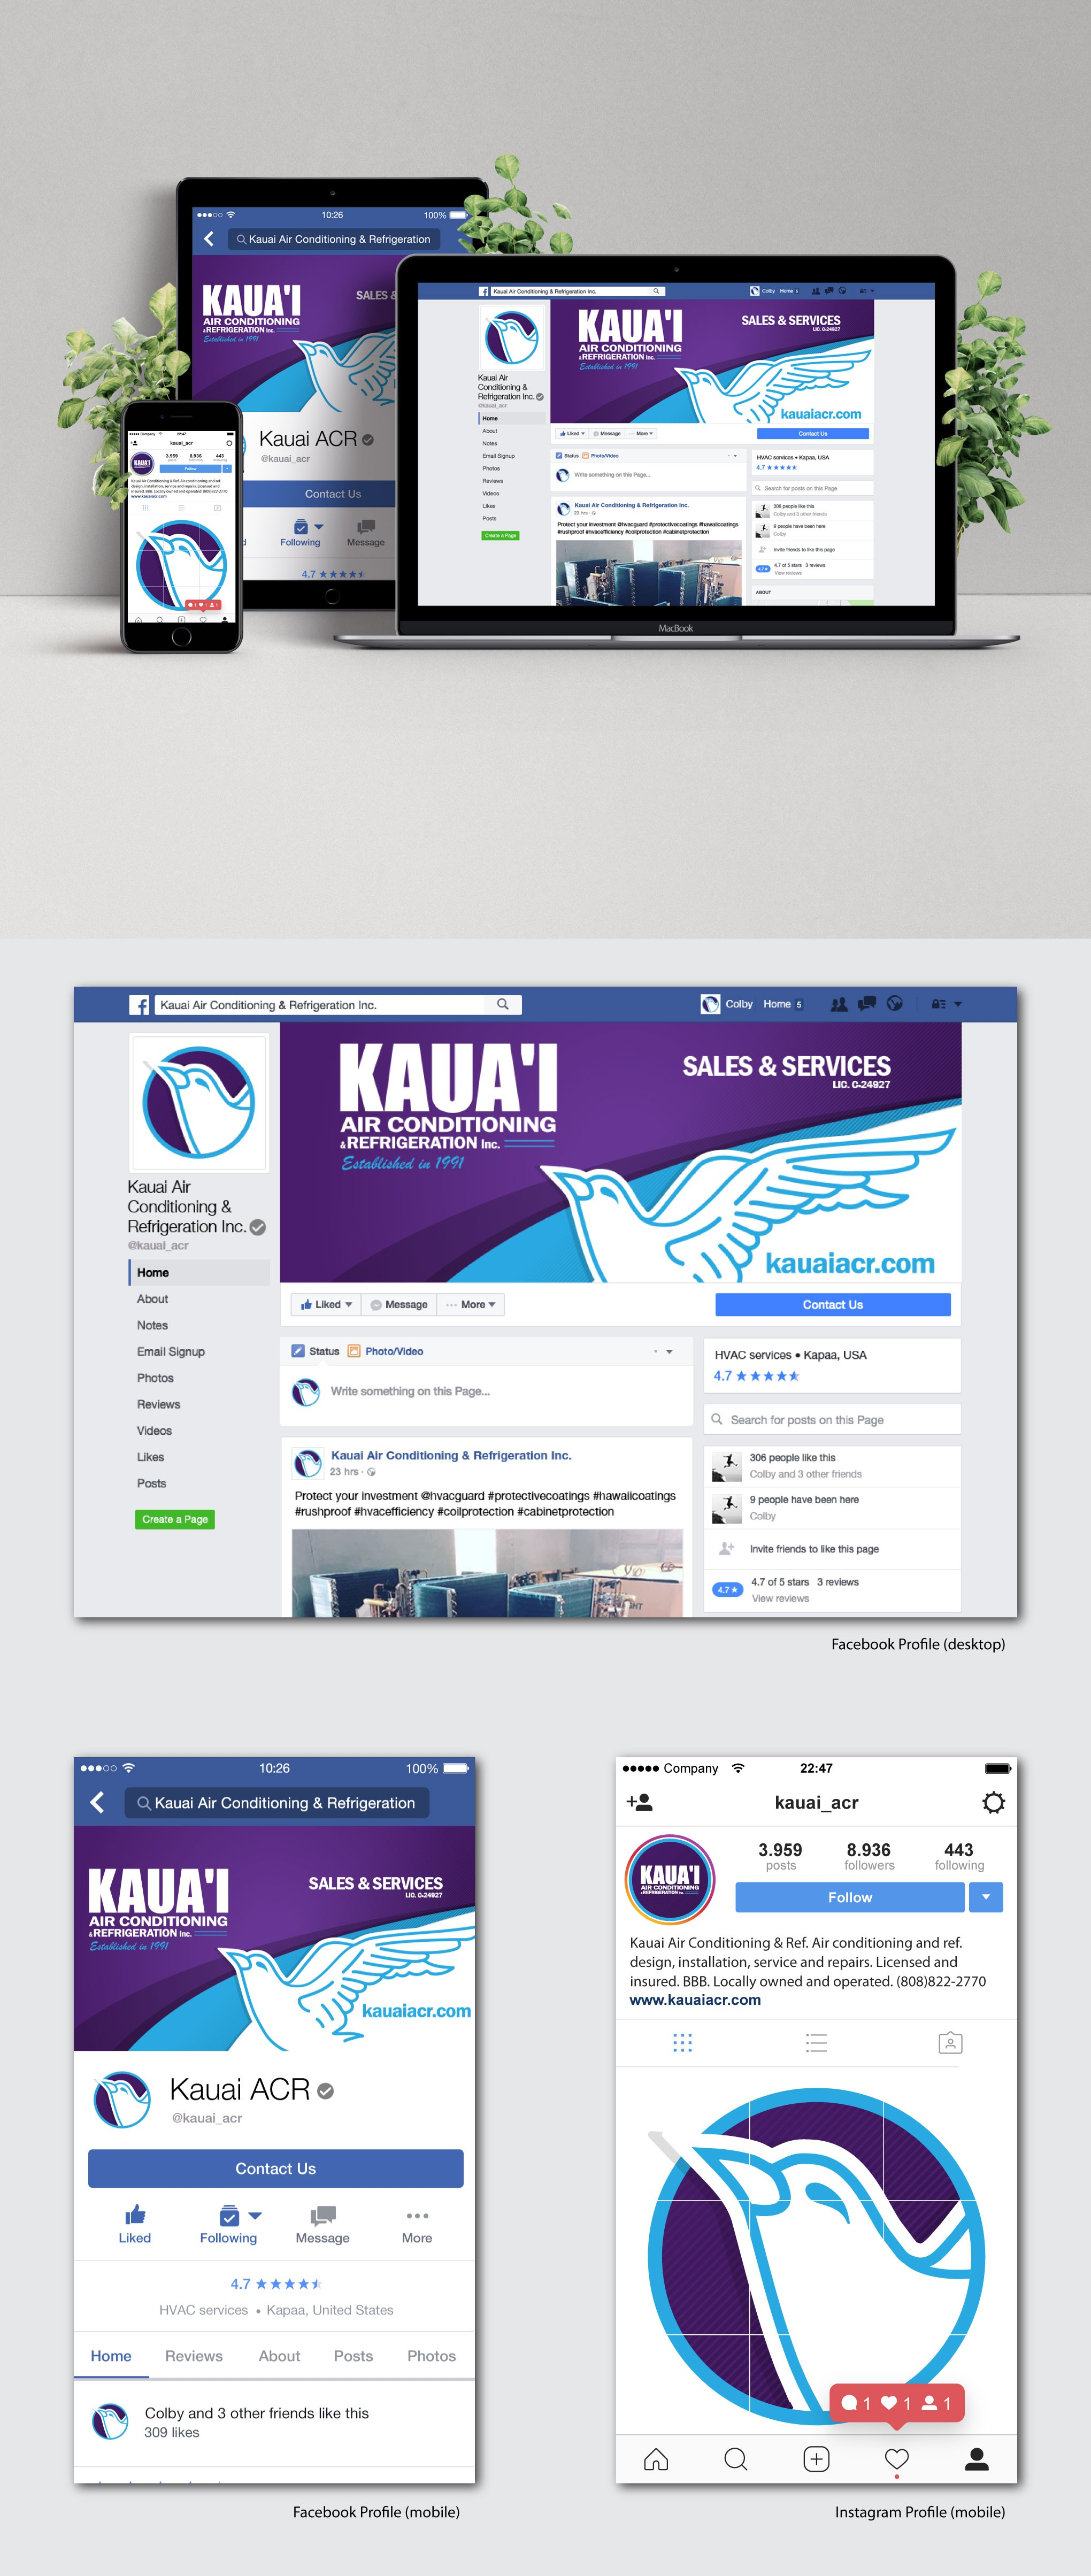 Facebook and Instagram Cover Page